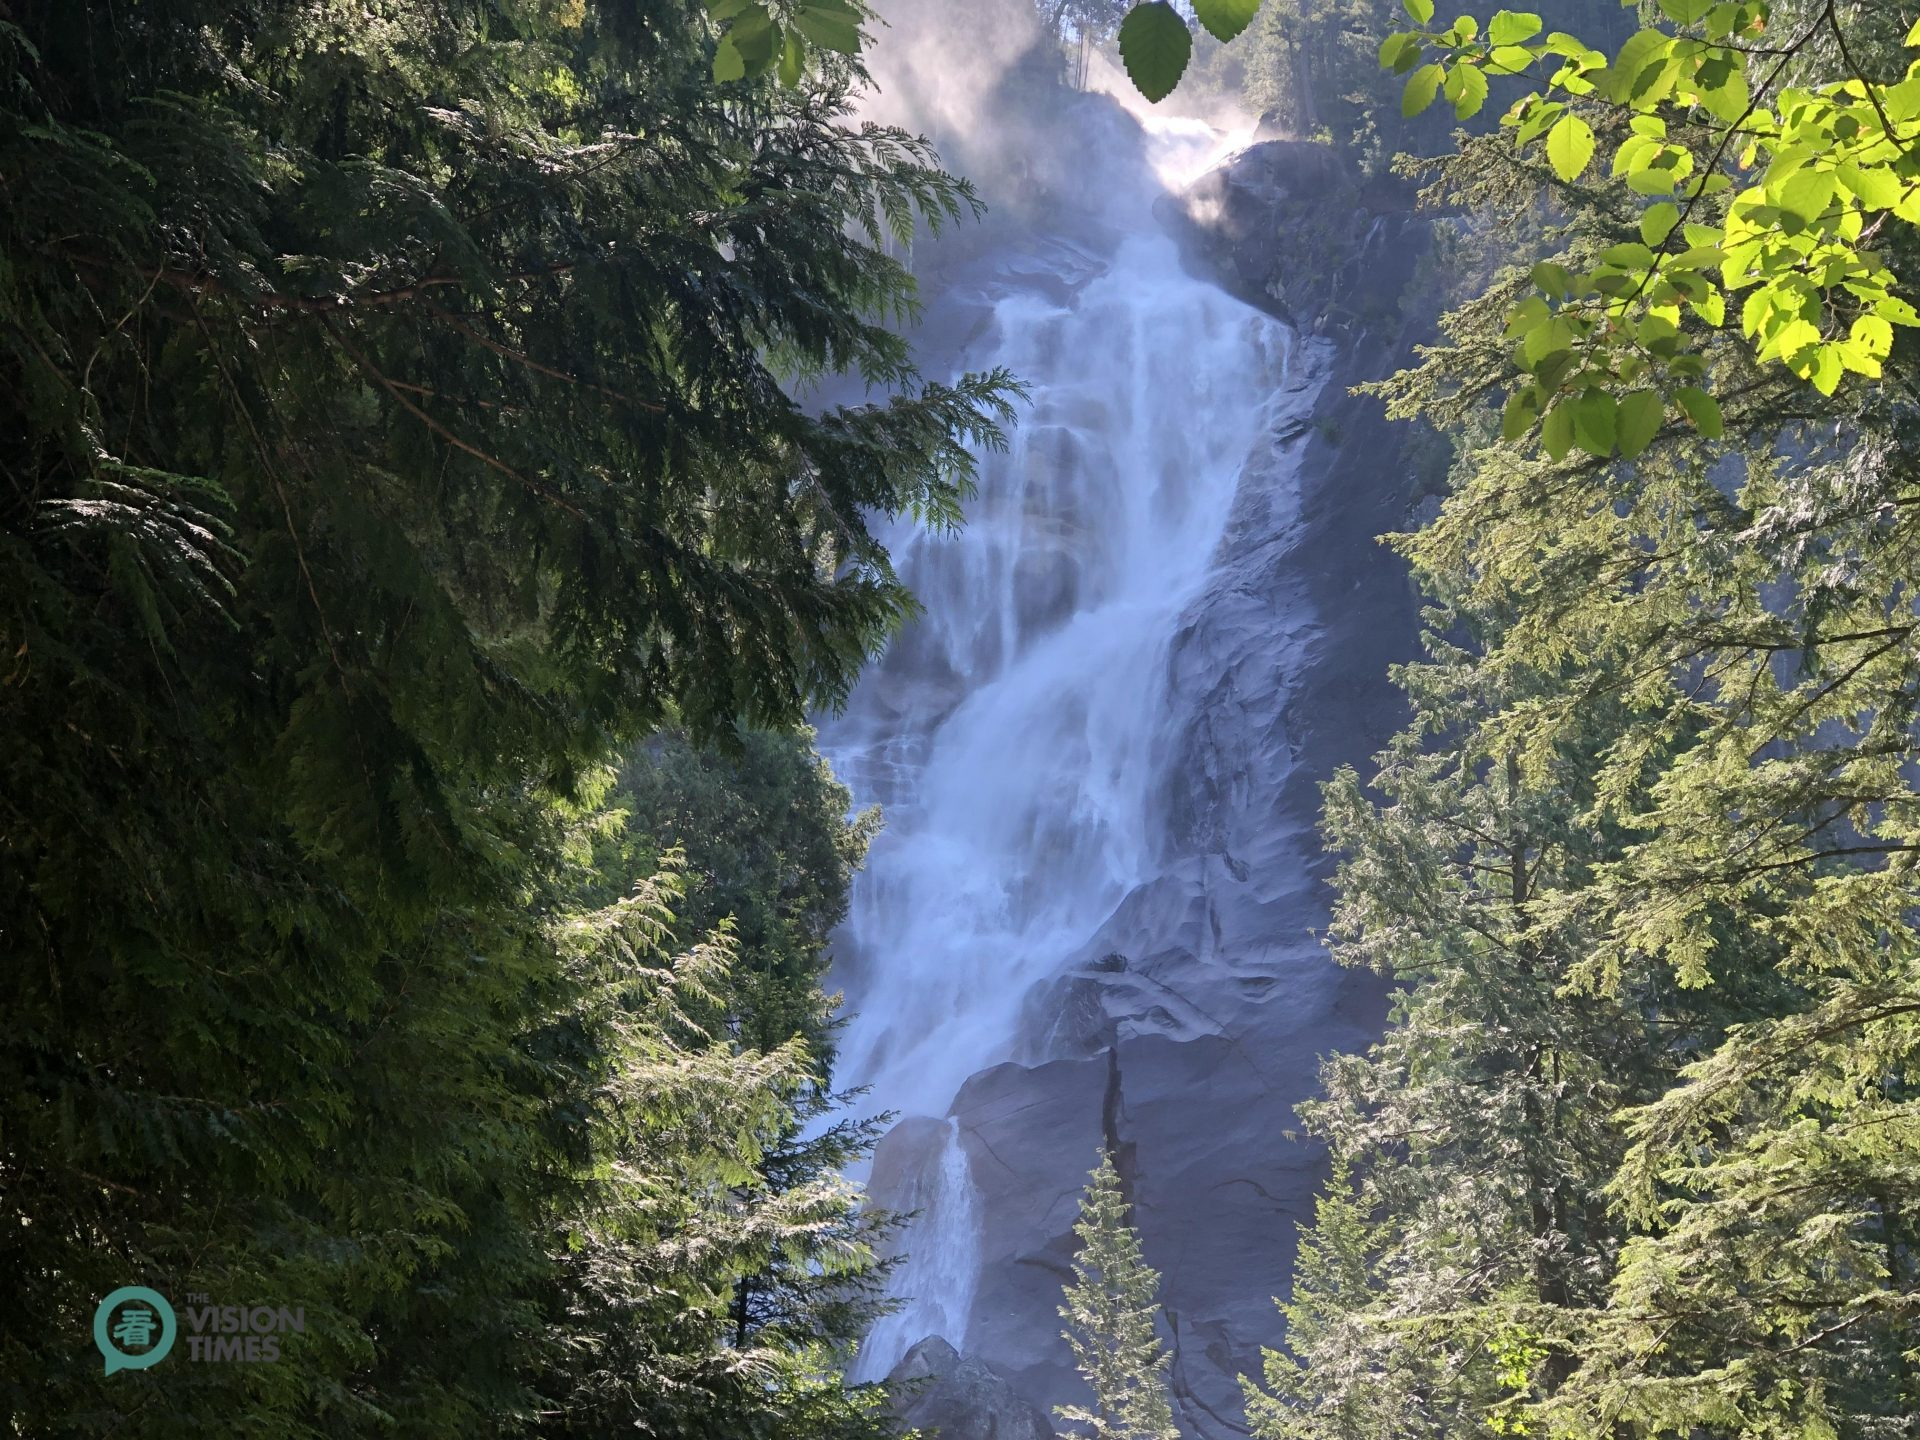 At Shannon Falls Provincial Park visitors can feel the mist of the spectacular 335 meter Shannon Falls. (Image: Billy Shyu / Vision Times)